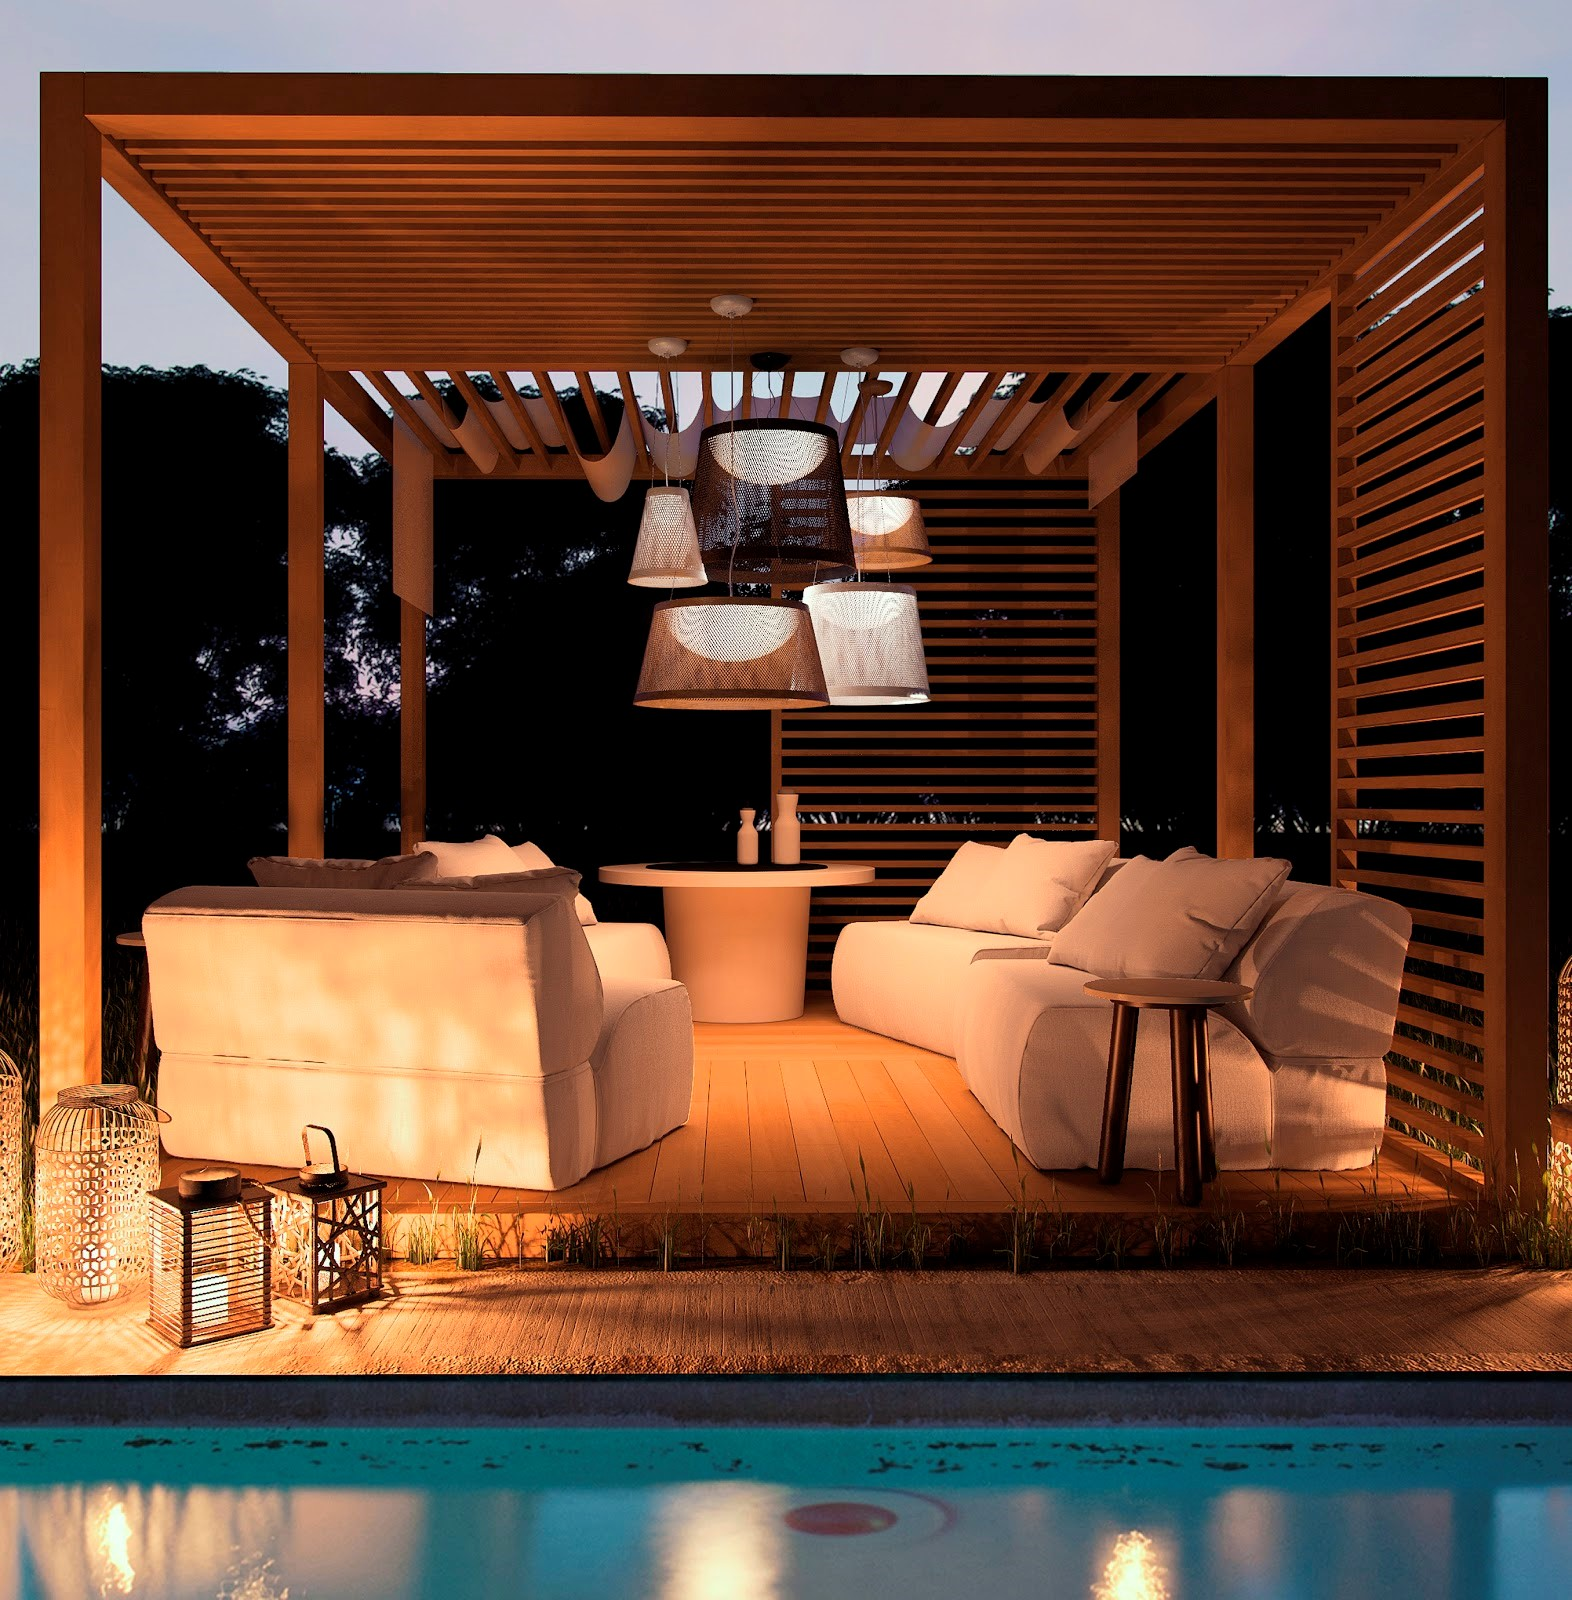 3 Best Lighting Fixtures to Illuminate Your Patio or Space